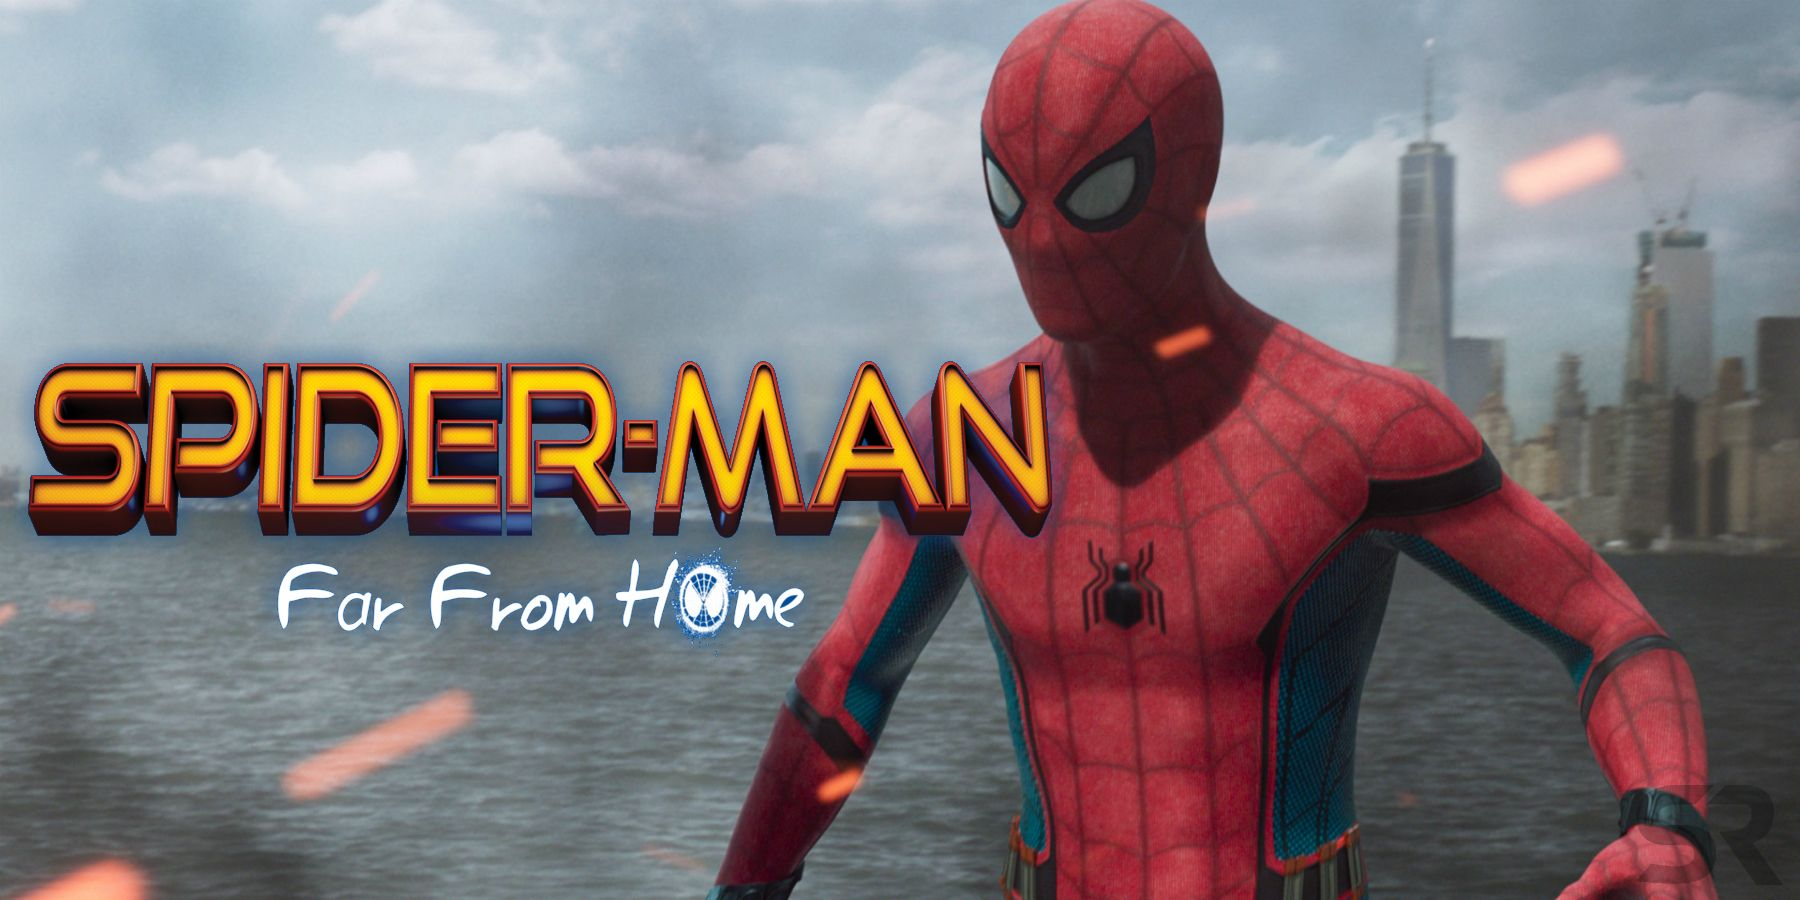 Kevin Feige Confirms Spider-Man 2 Title